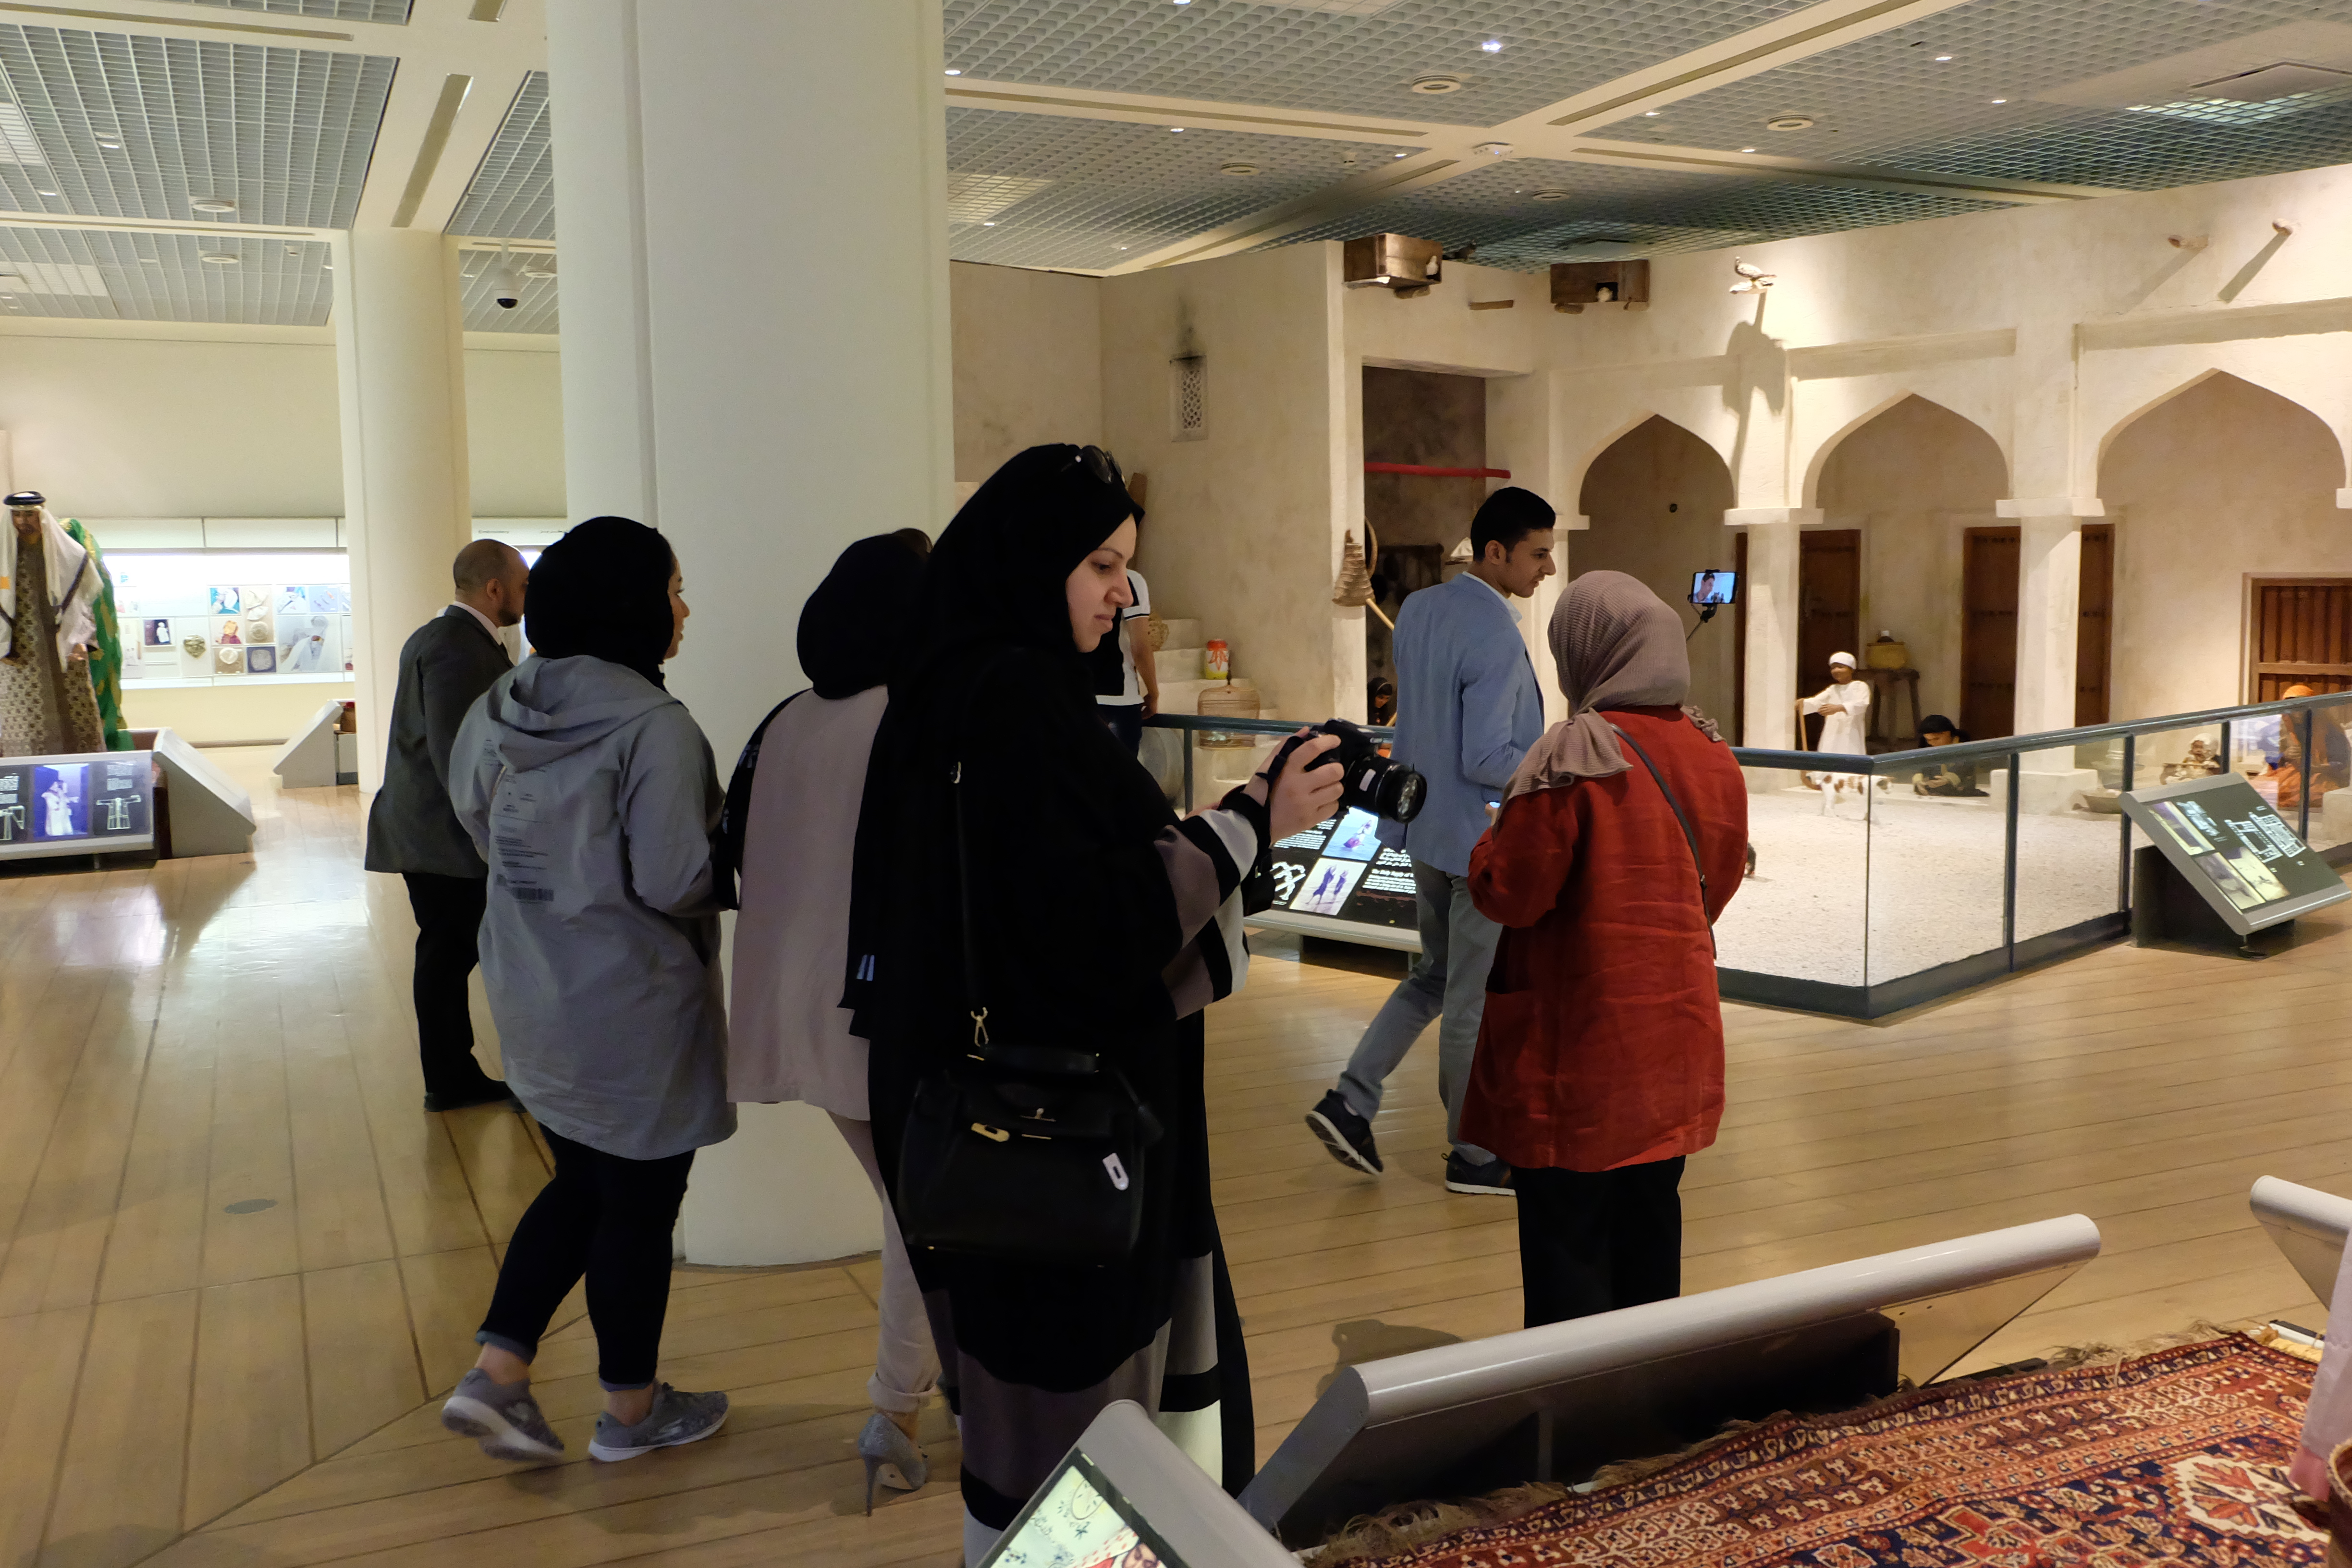 Keepers Tour at Bahrain National Museum and Boat Ride to Abu Maher Fort